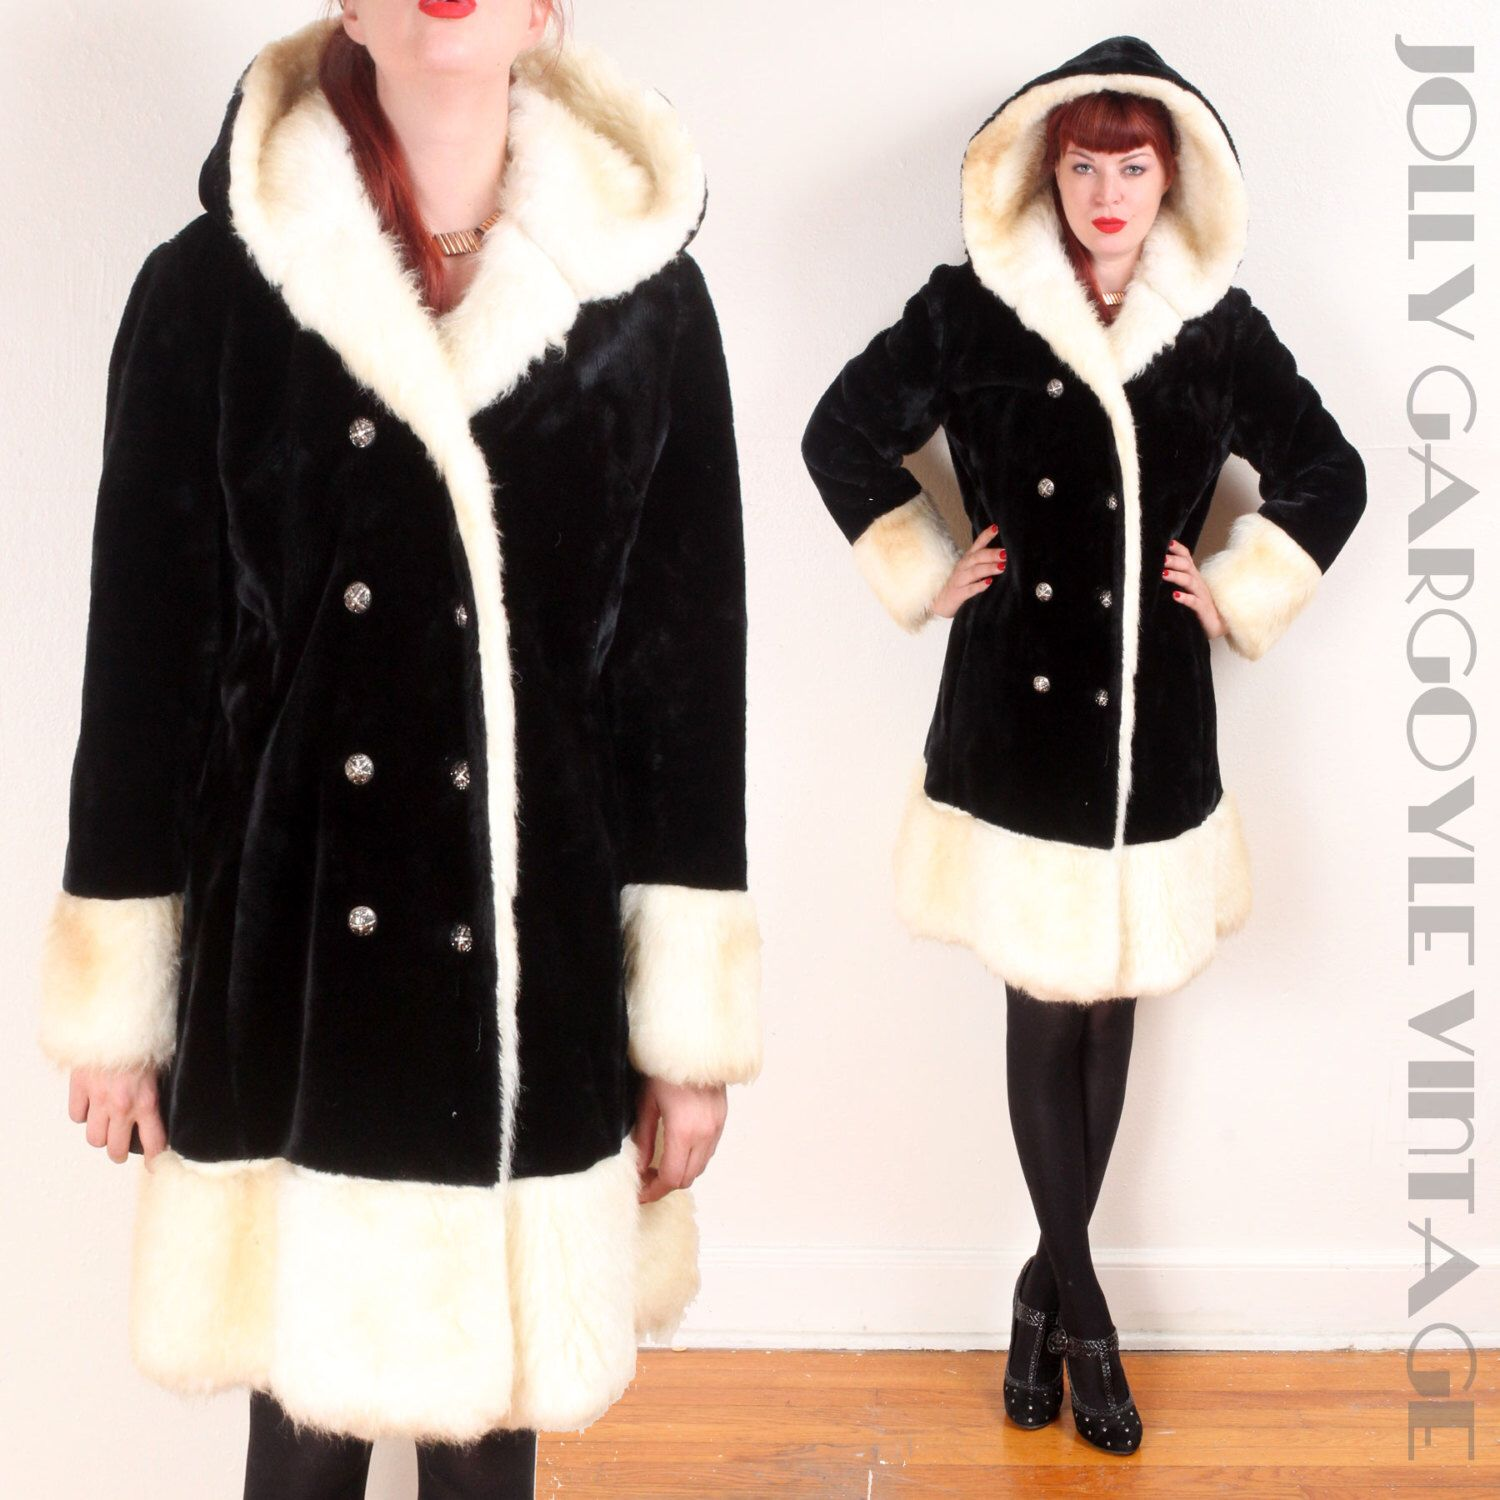 Vintage 1960s faux fur shearling black and cream white hooded princess coat - SM to MD by TheJollyGargoyle on Etsy https://www.etsy.com/listing/251077322/vintage-1960s-faux-fur-shearling-black